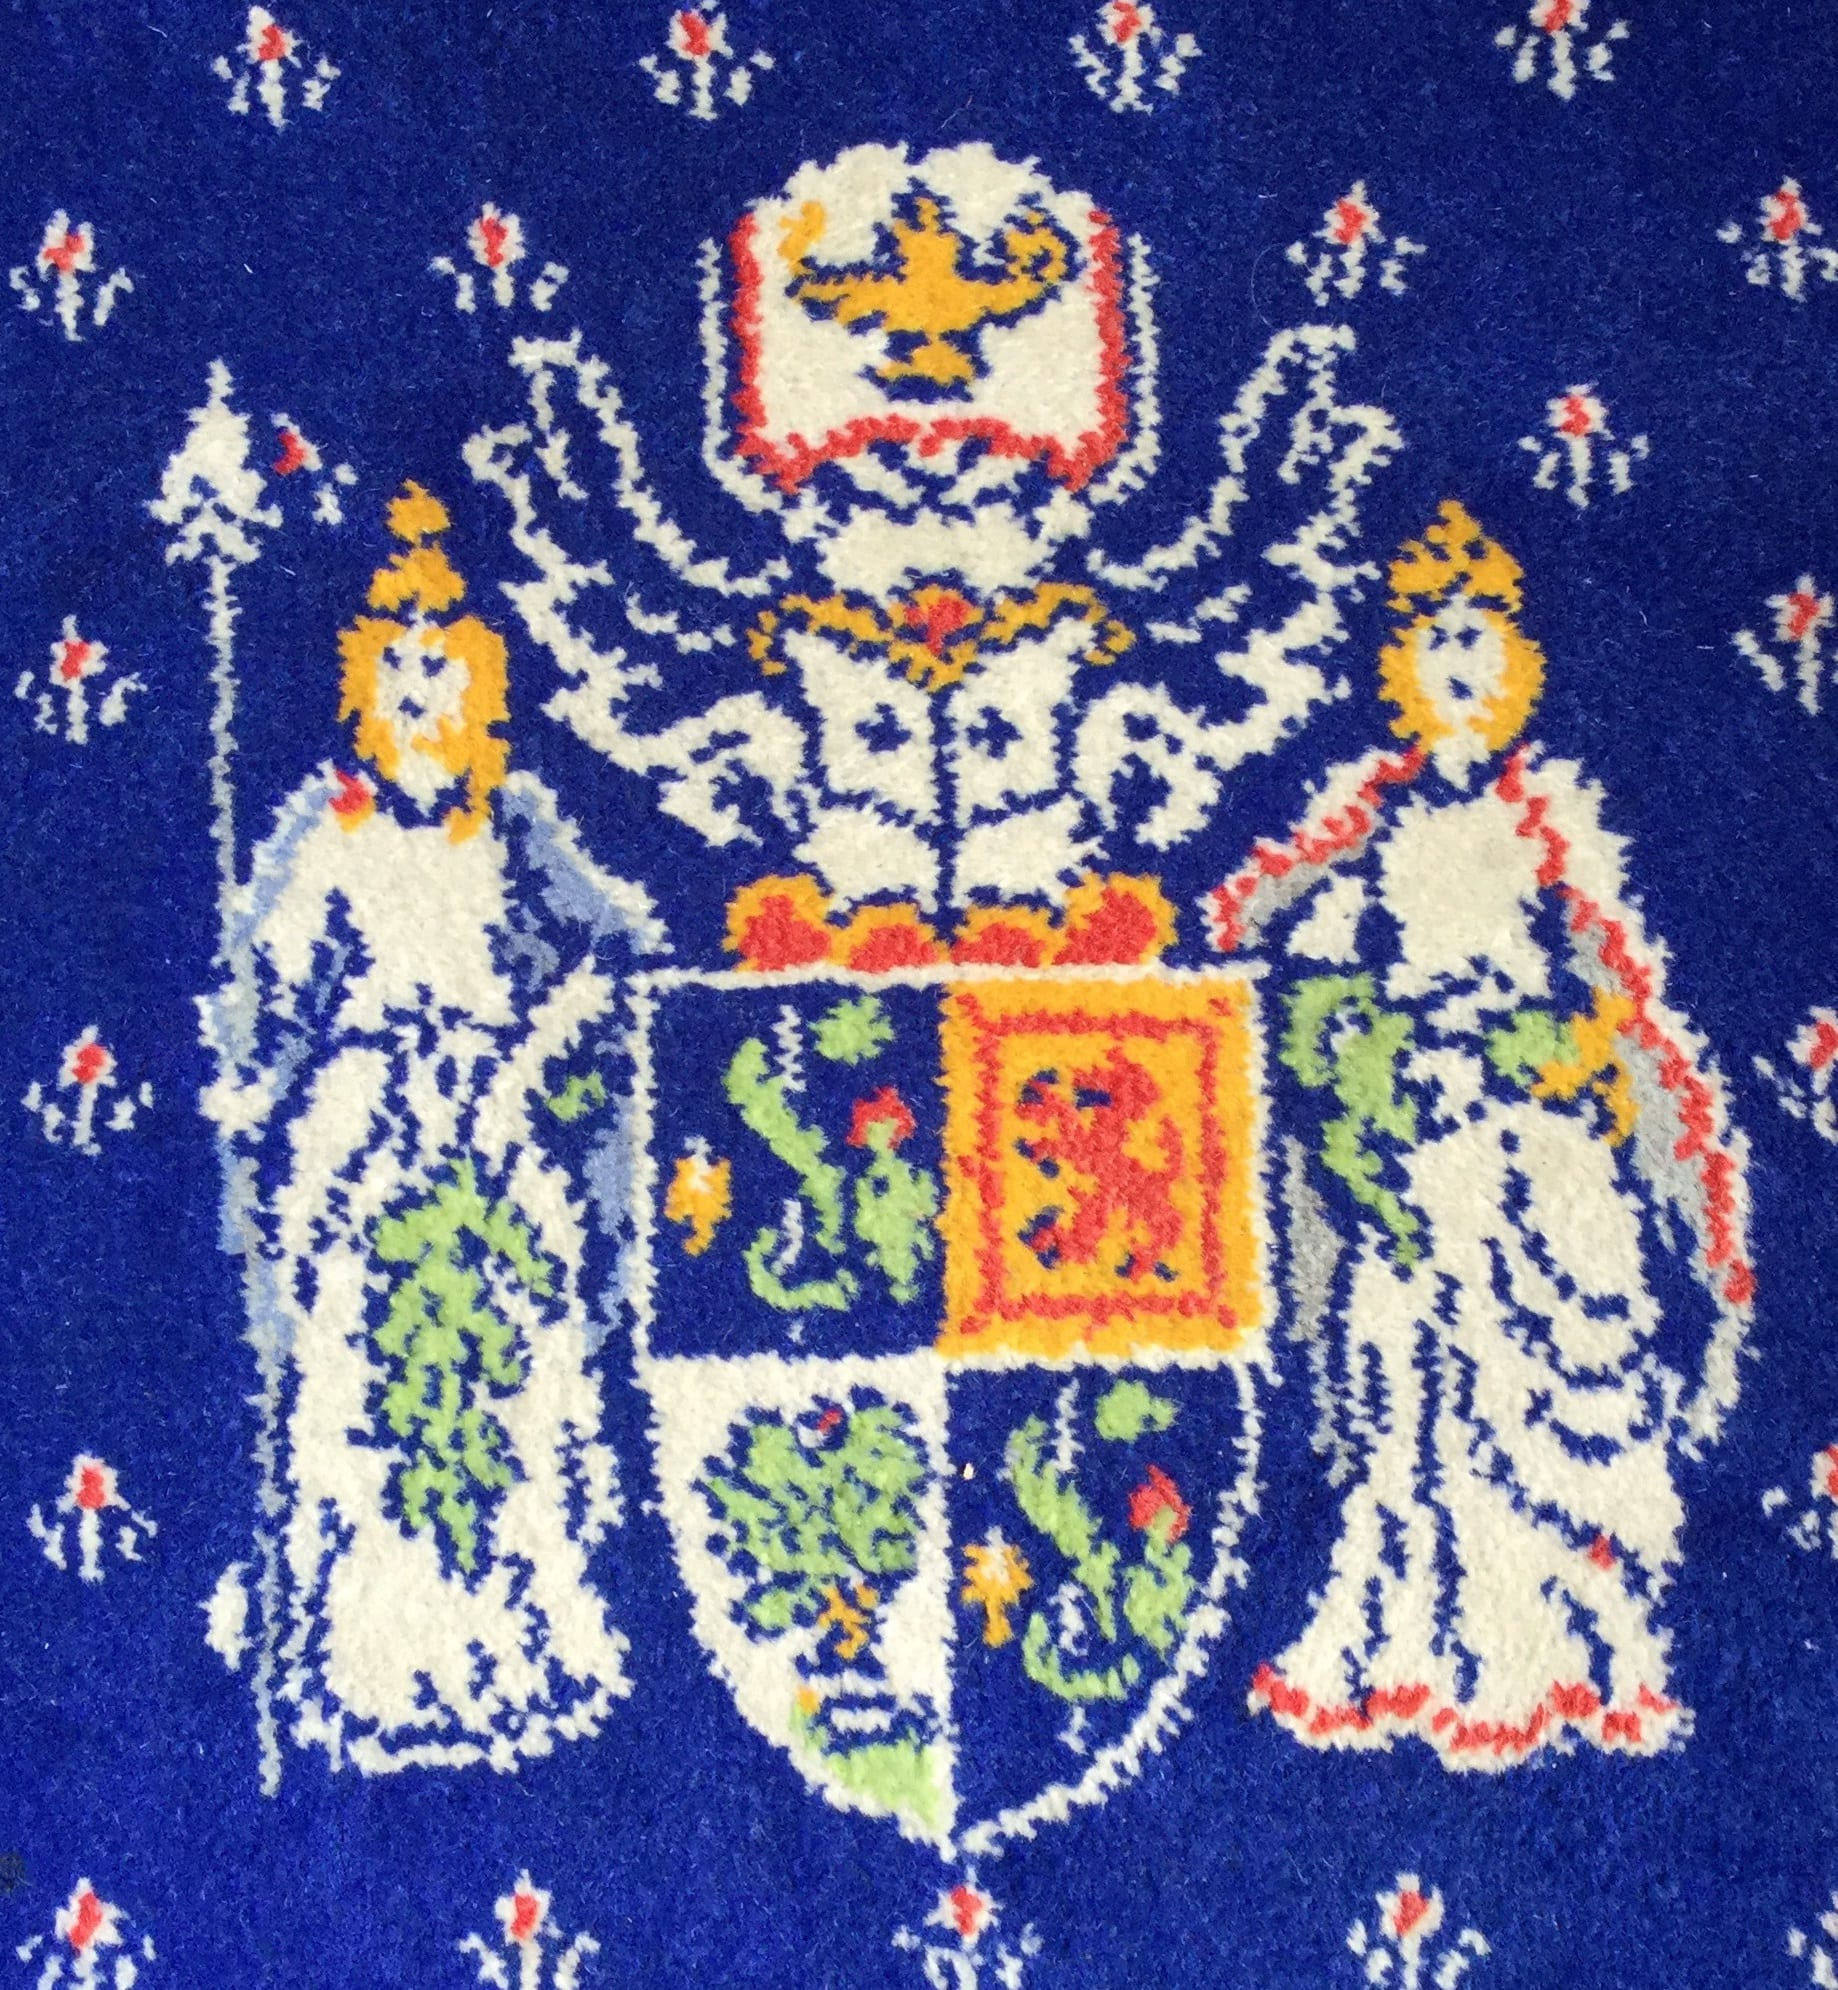 Logo of the College featured on the Lock Room carpet